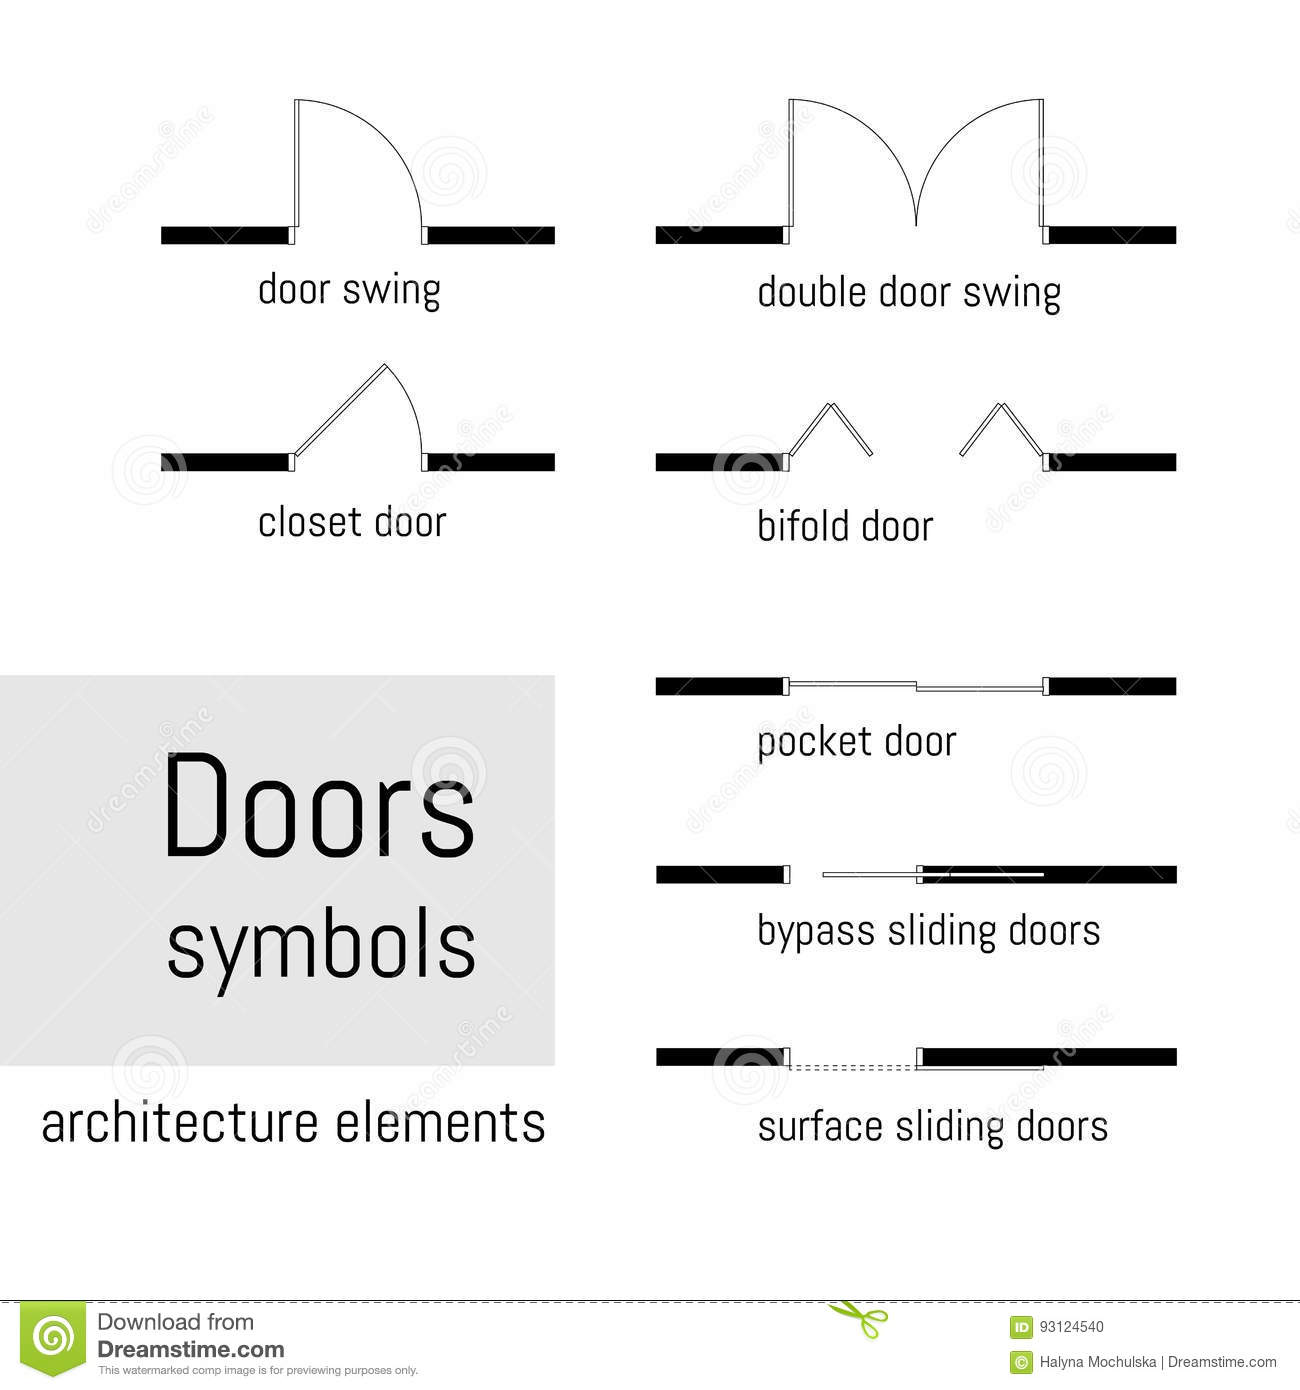 Top View, Construction Symbols Used In Architecture Plans